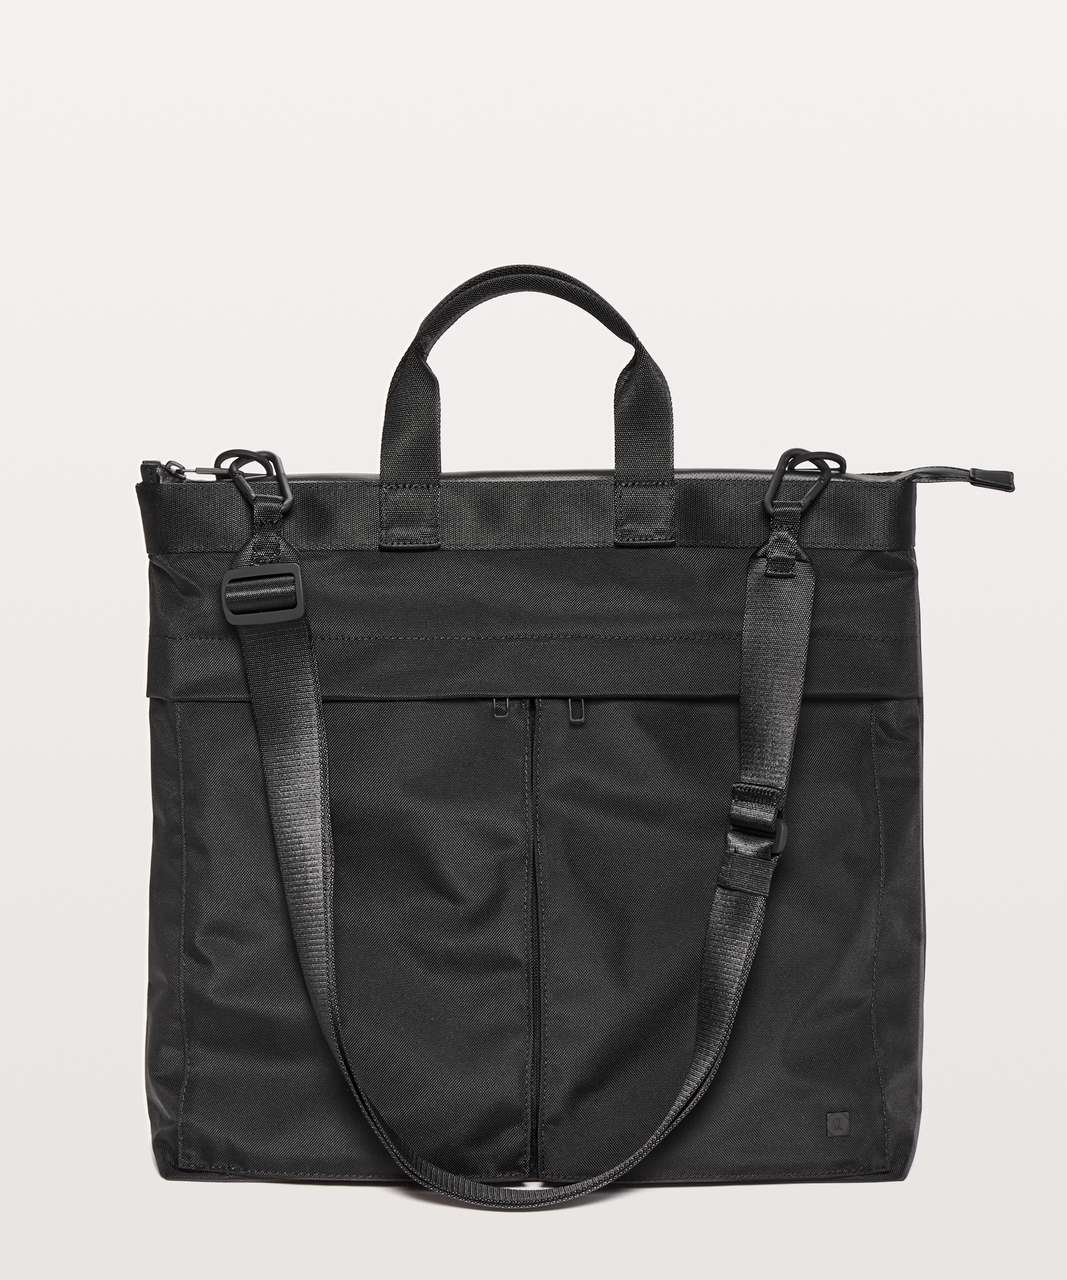 Lululemon Commission Bag *20L - Black